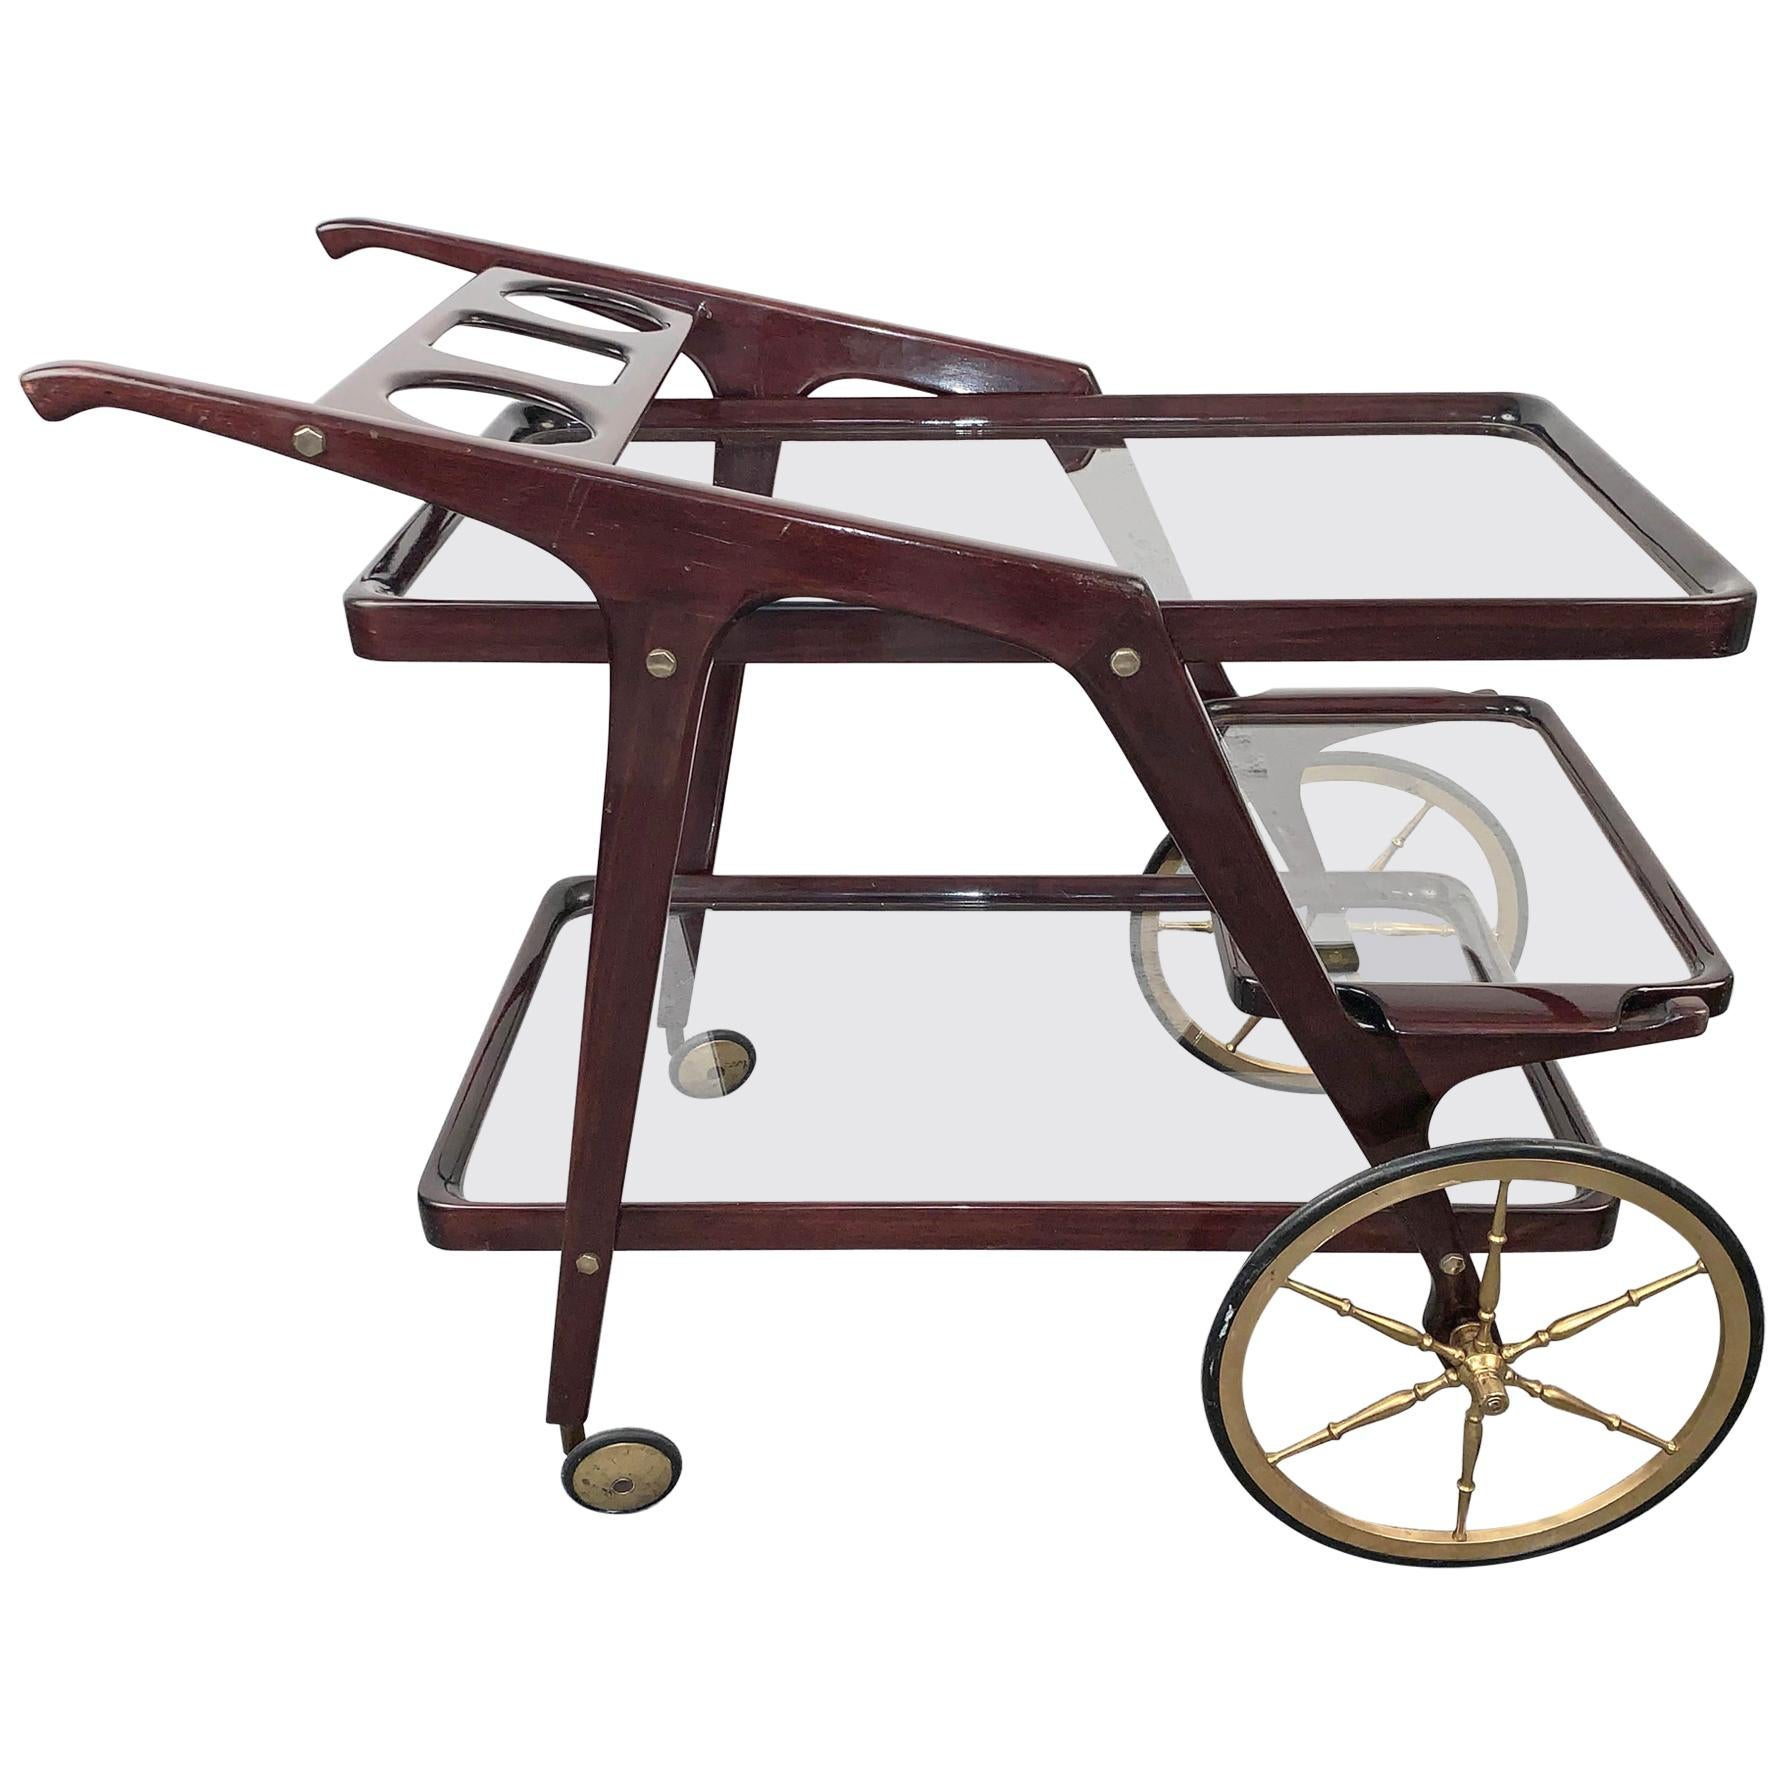 Cesare Lacca Midcentury Wood Italian Bar Cart with Glass Serving Trays 1950s